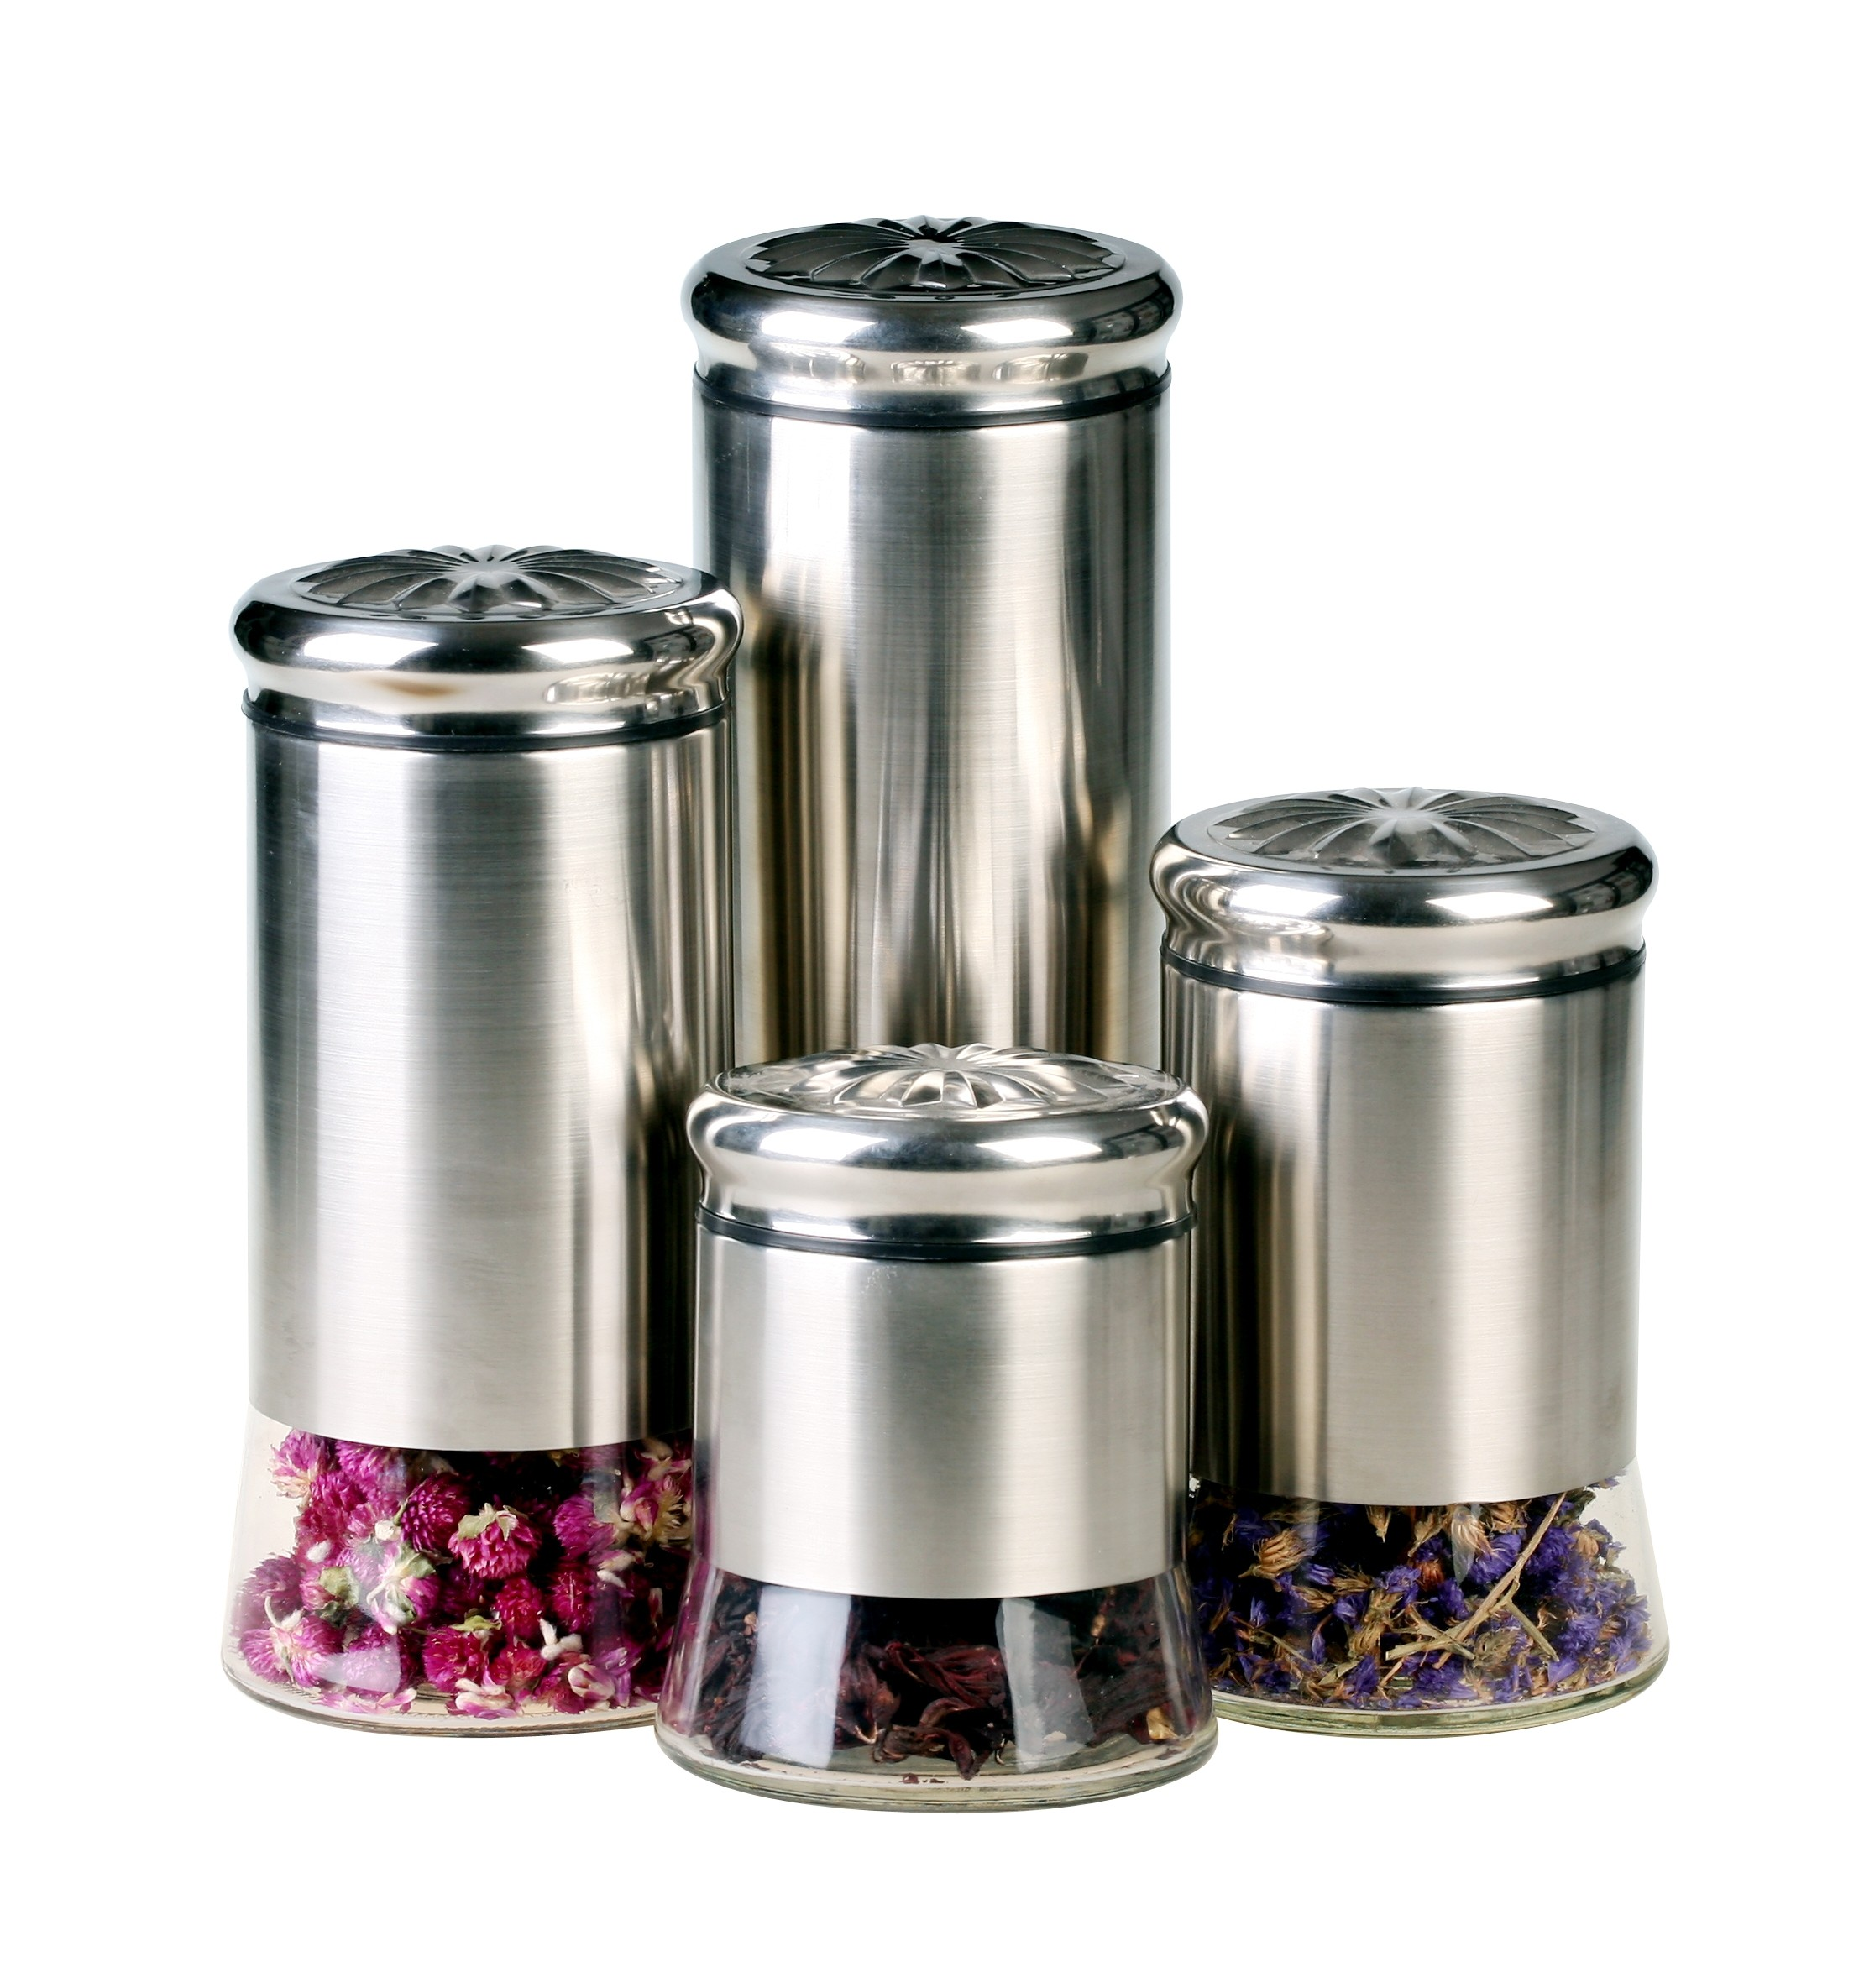 canisters for the kitchen gbs3024 helix 4 piece canister set kitchen canisters